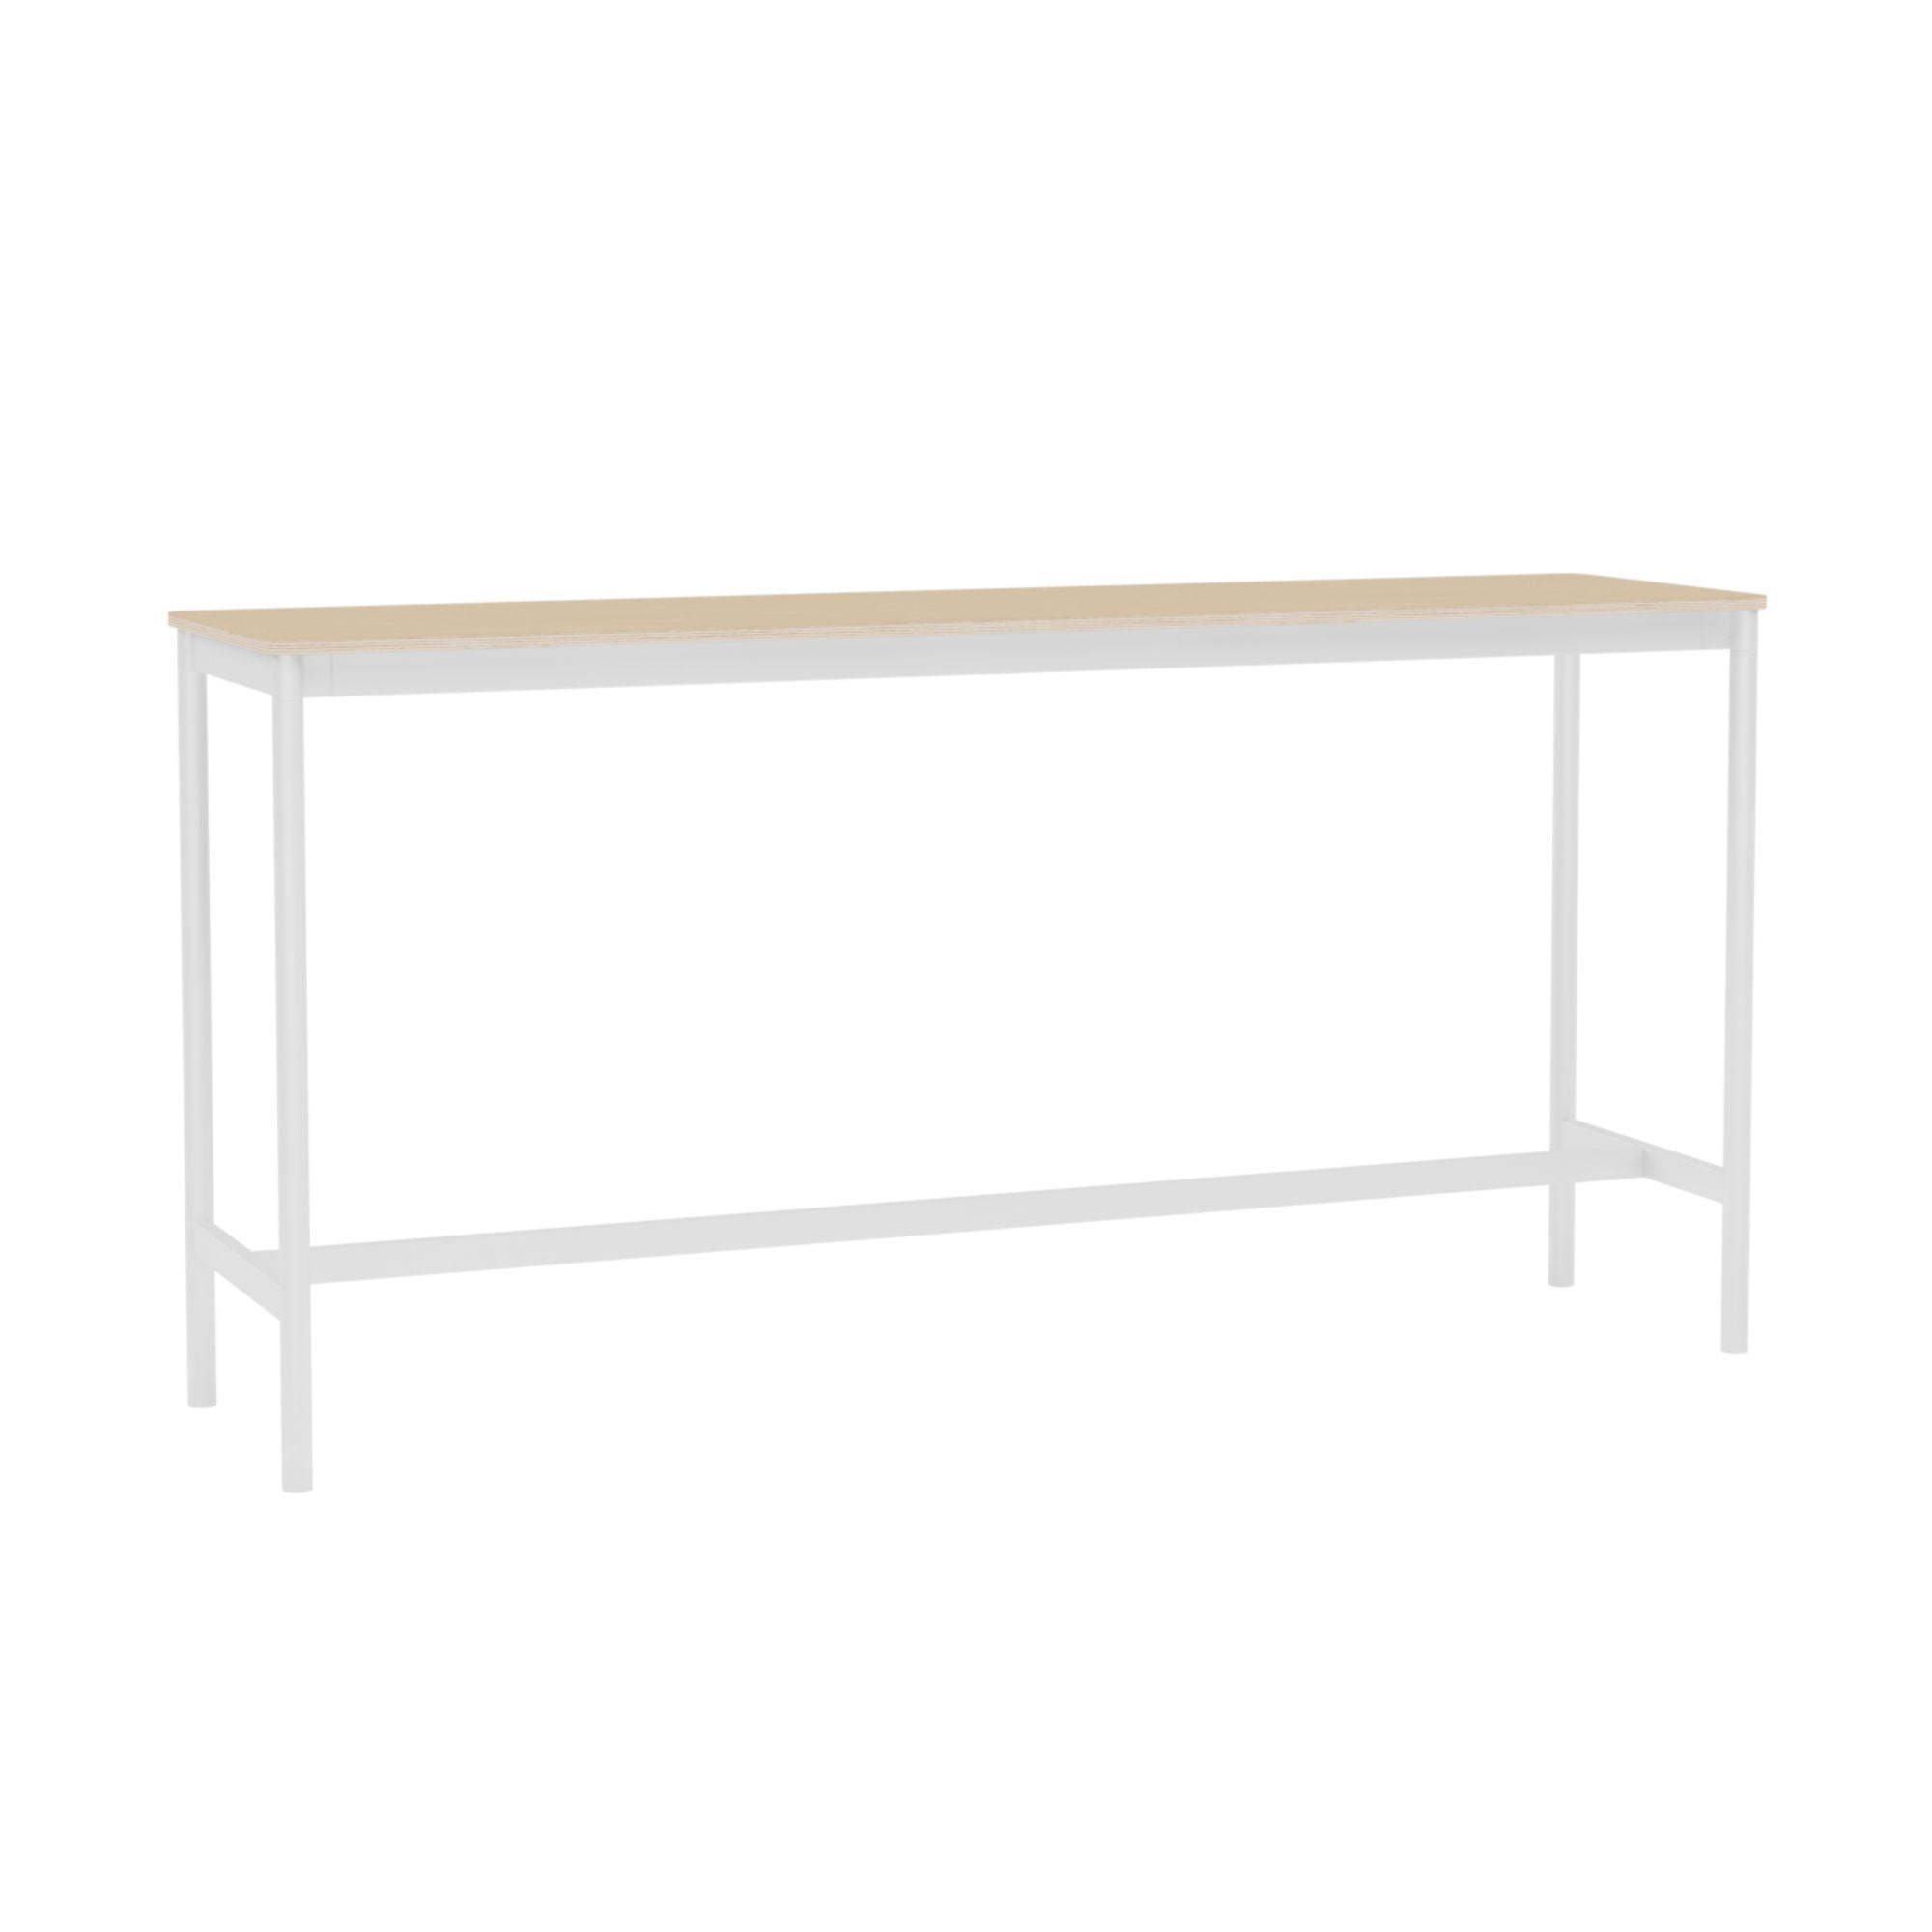 Muuto Base High Table 190x50 h:95cm , Lacquered Oak Veneer/Plywood/ White